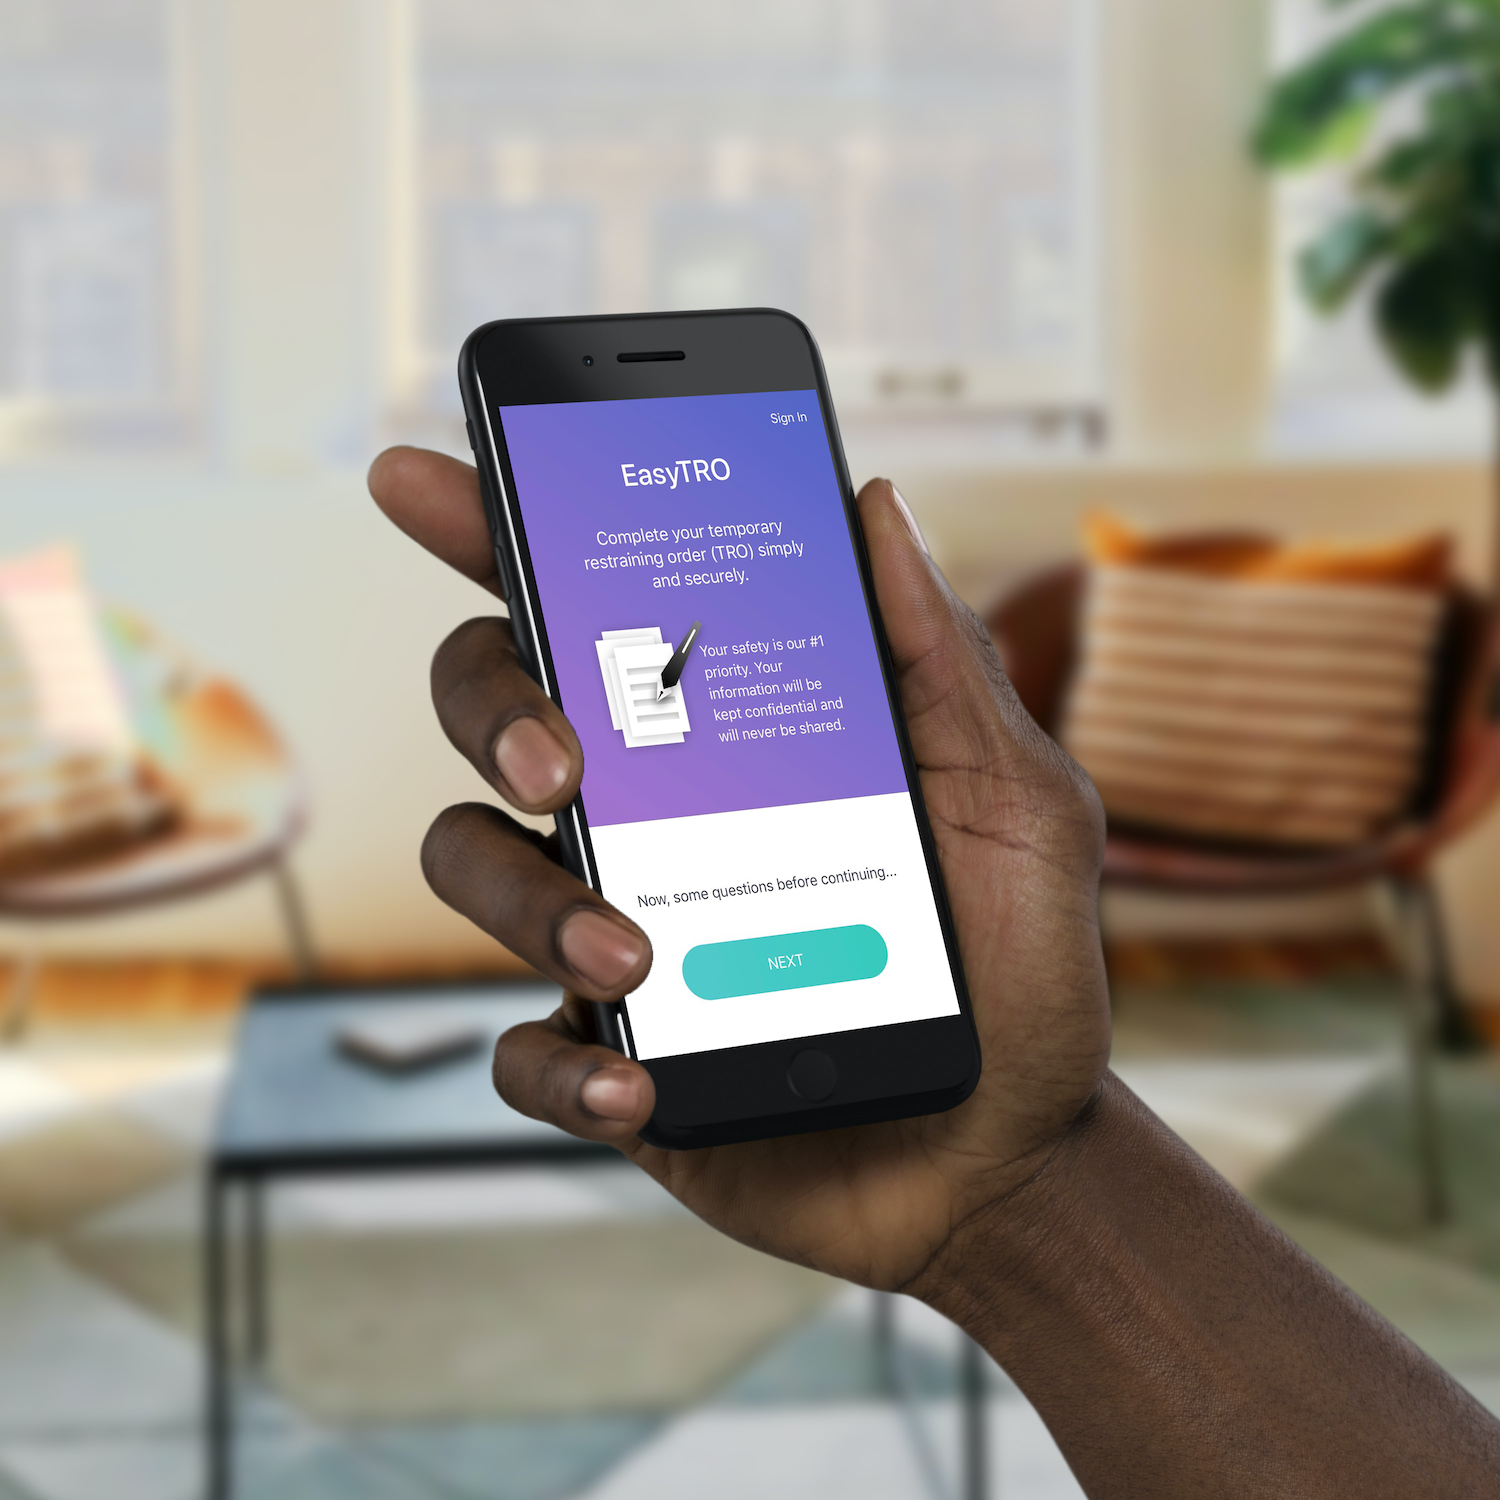 EasyTRO app invented by human trafficking survivor to help people seek protection from abusers